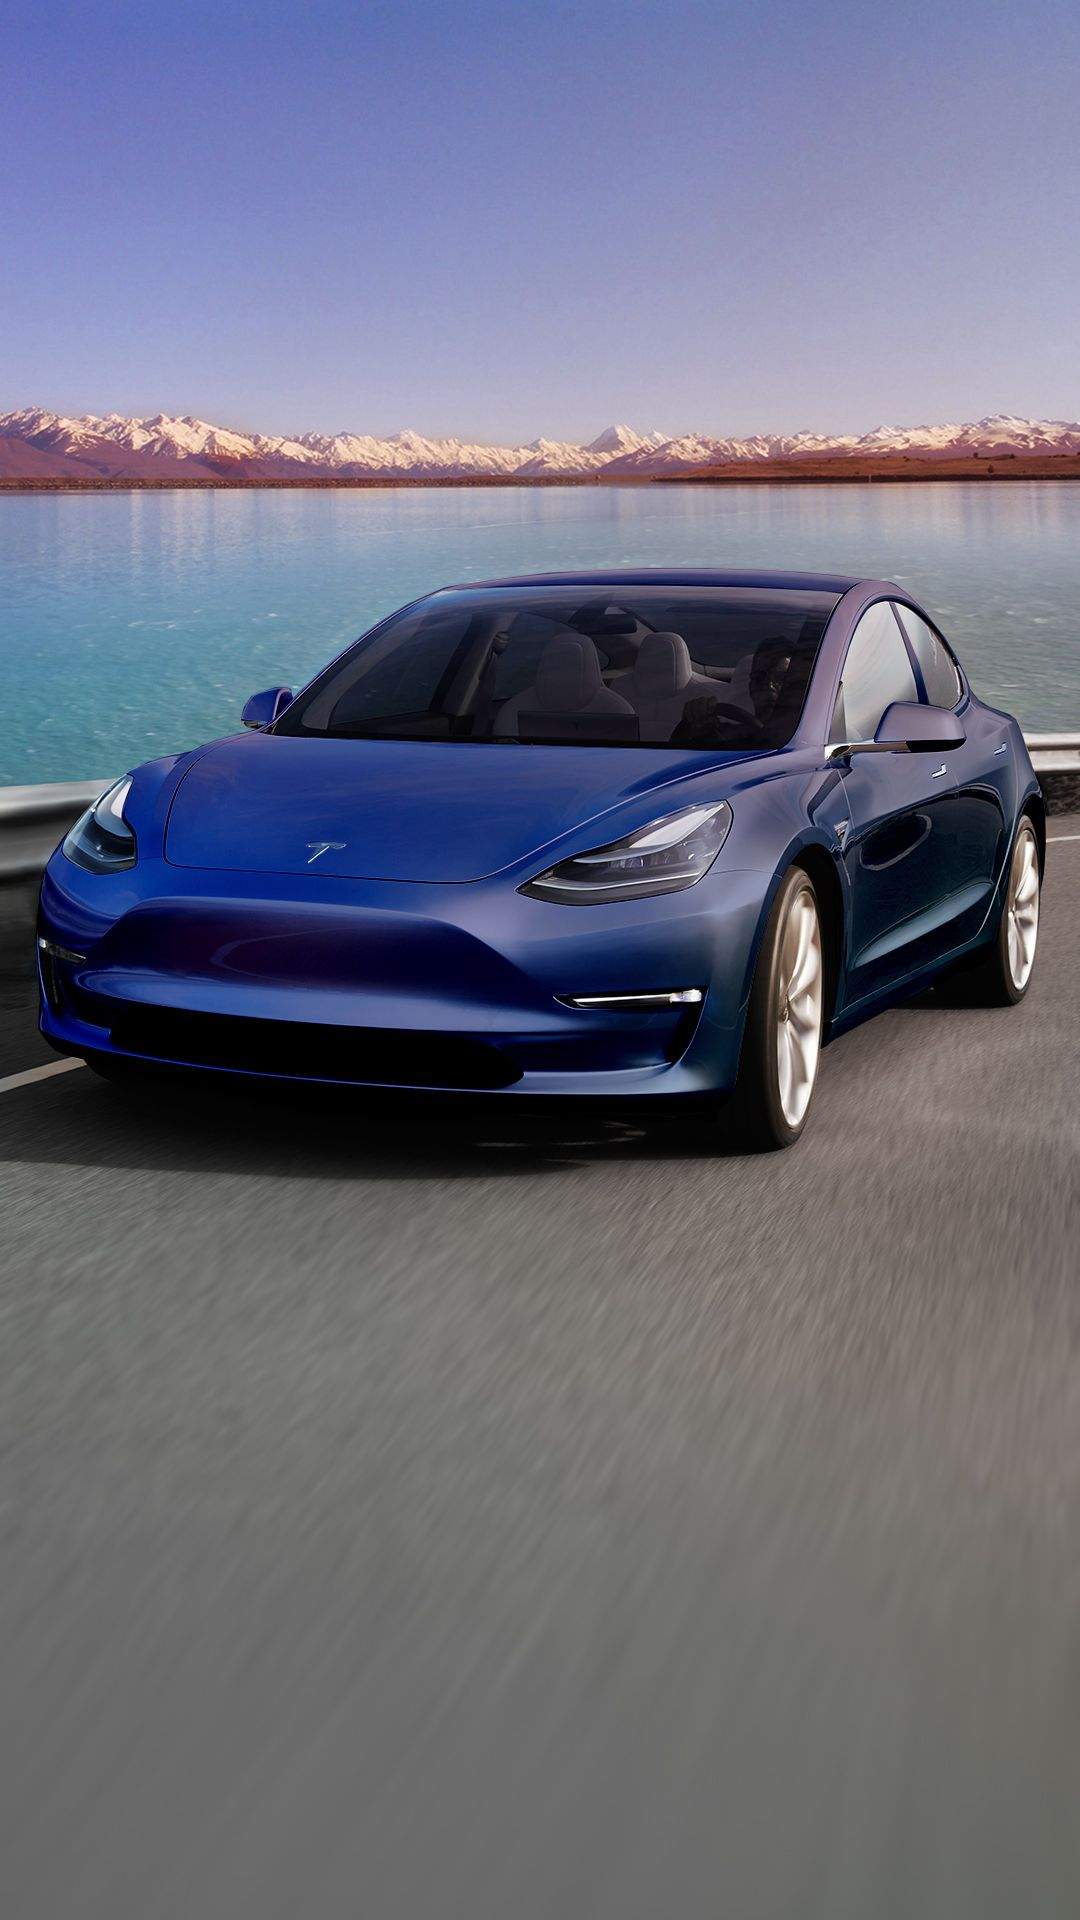 Tesla S Wallpaper · HD Wallpapers Tesla model, Tesla, S